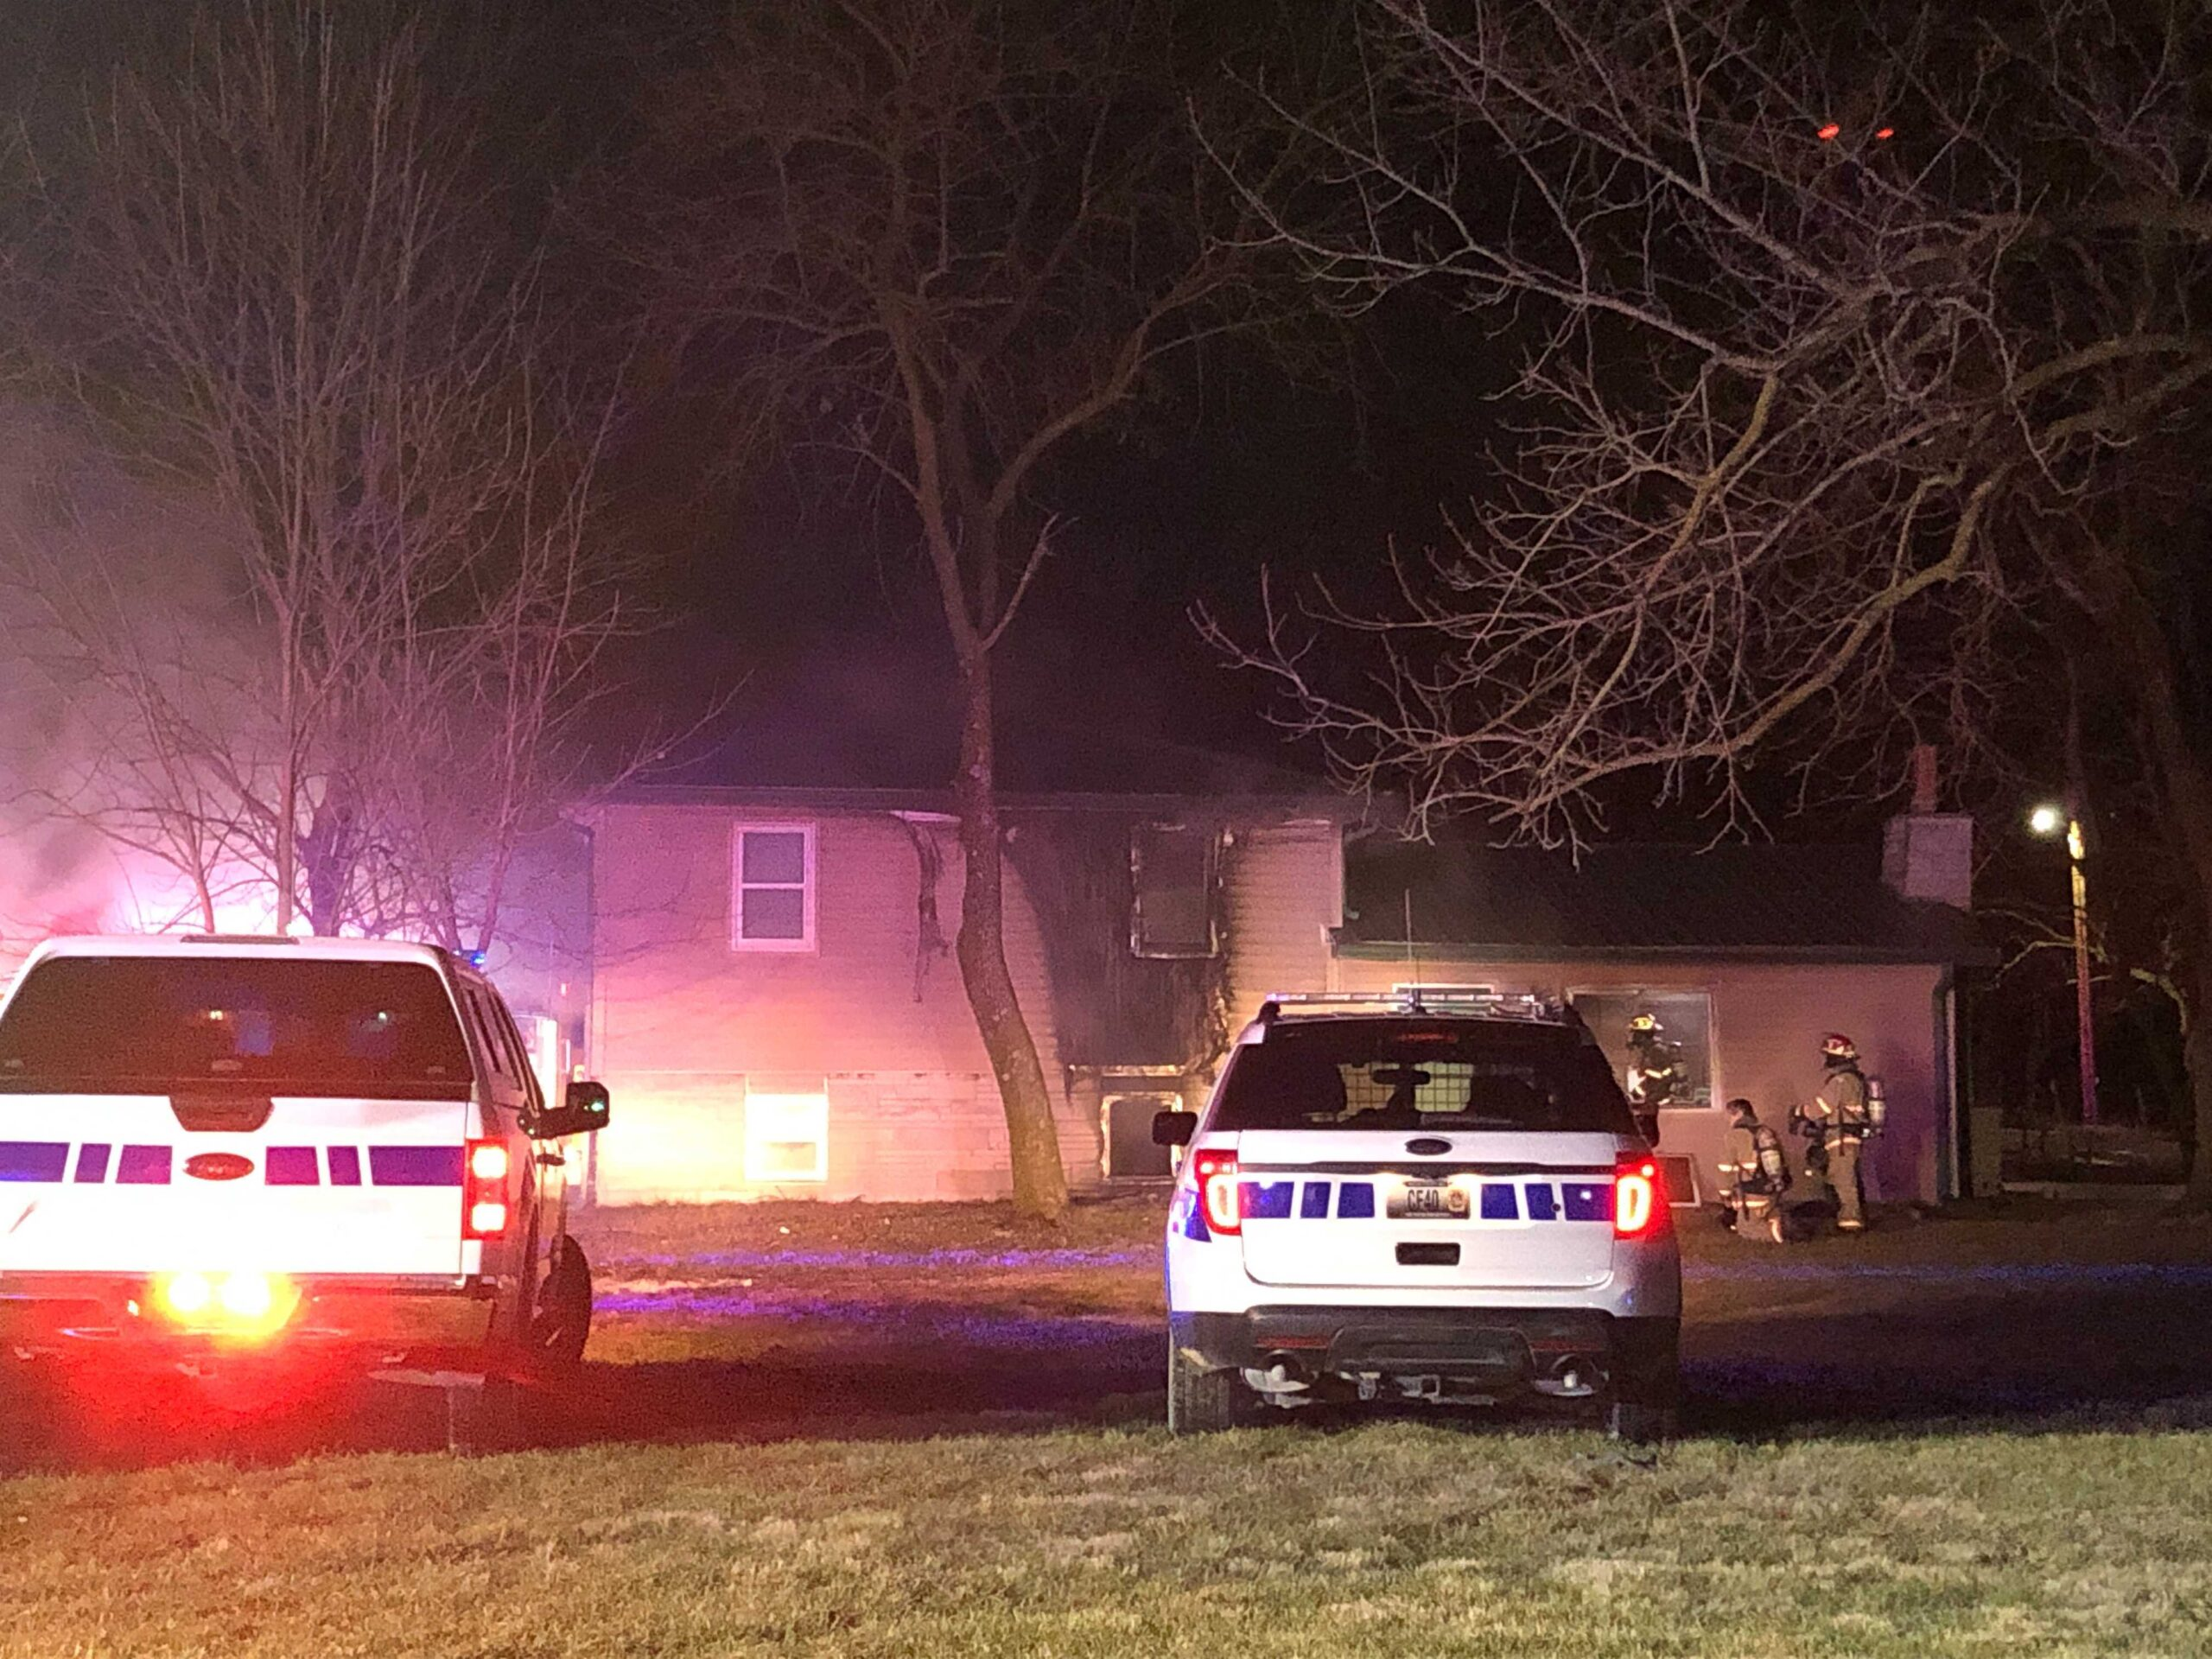 The Boone County Fire Protection says a 68-year-old Columbia man, Charles D. Tolentino, was killed as a result of a Hallsville house fire on Jan. 5.